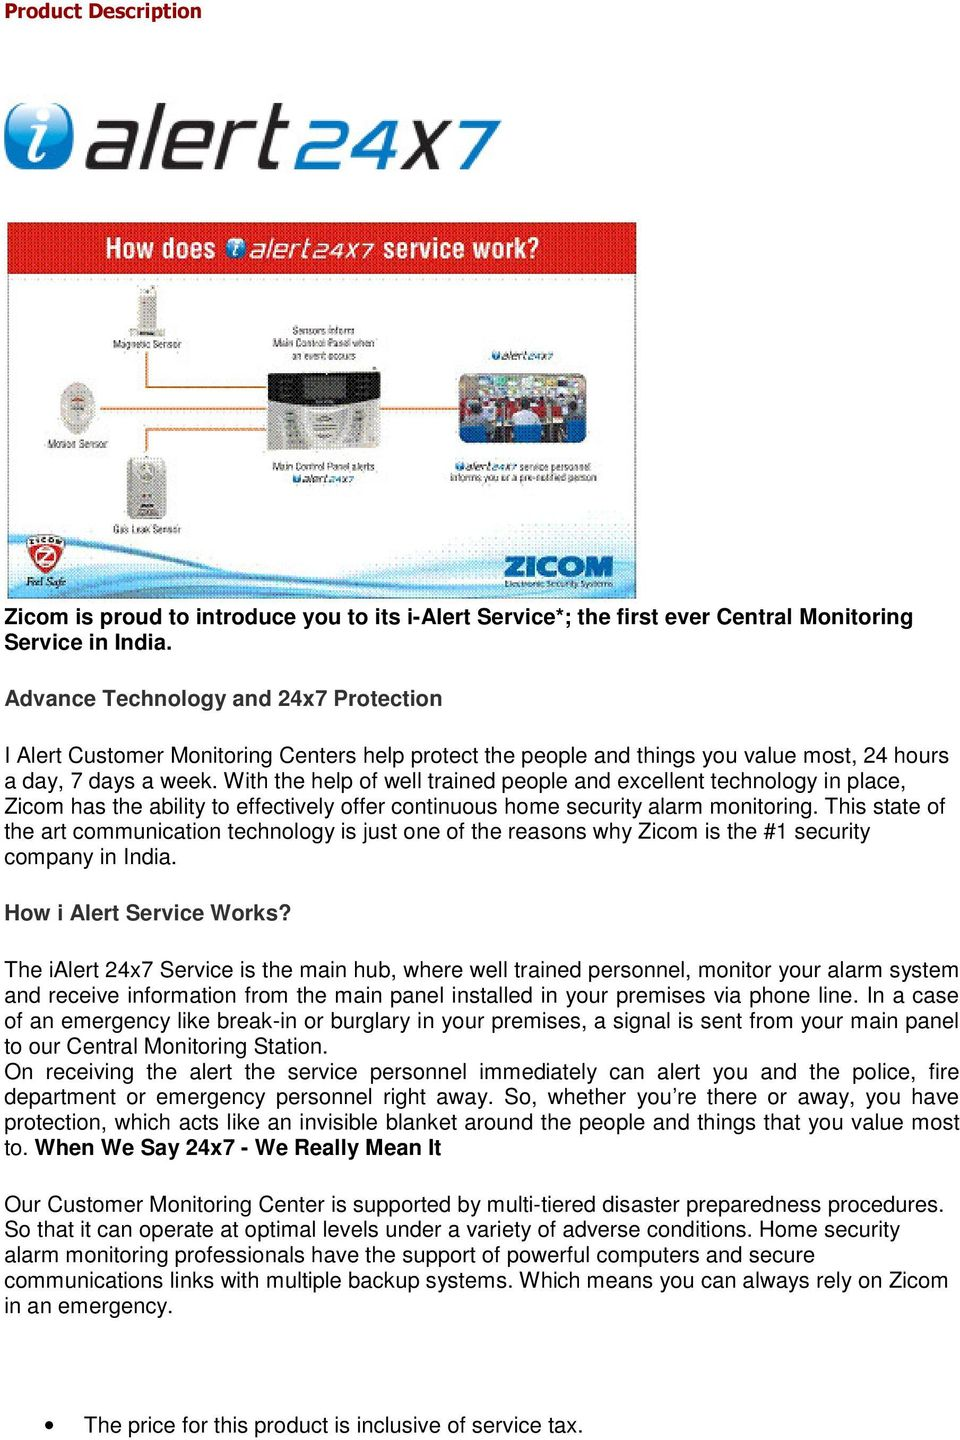 Home Alarm System Product Description Pdf Related Links More Circuit About Alert With The Help Of Well Trained People And Excellent Technology In Place Zicom Has